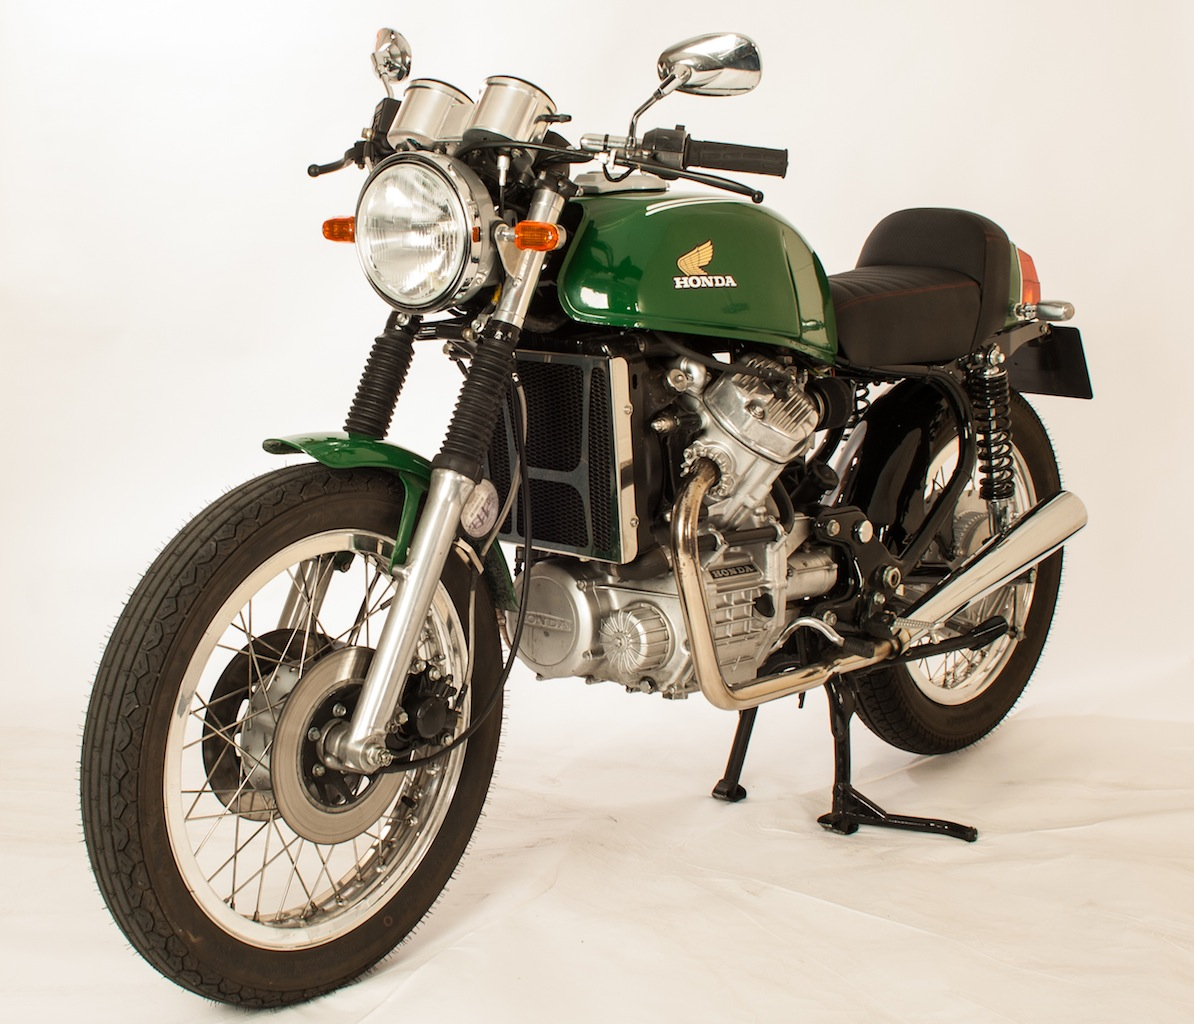 Eccezionale CRK 500 Cafe Racer — Cafe Racer Kits and Custom Bike Manufactured BF53